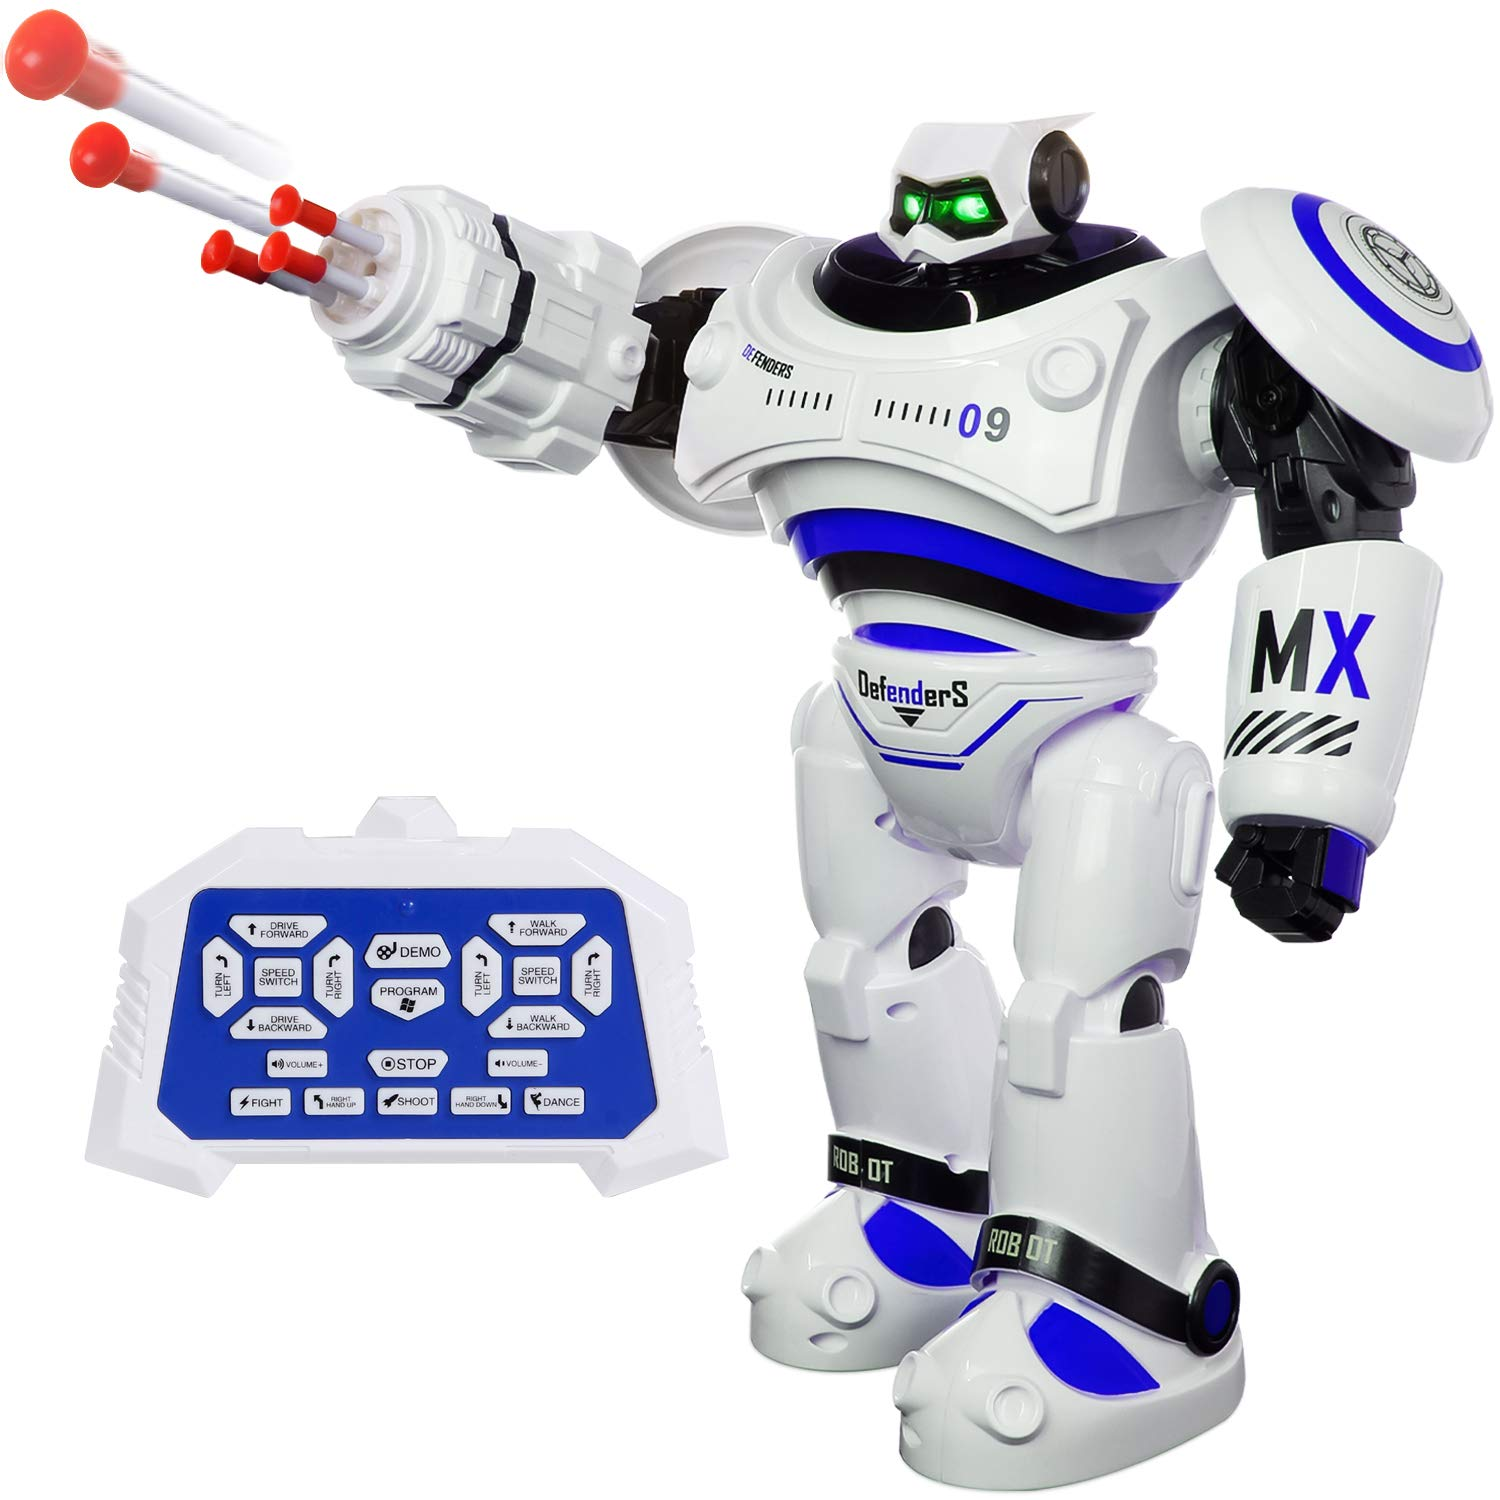 SGILE Remote Control Robot, RC Programmable Educational Robot for Kids Birthday Gift Present, Interactive Walking Singing Dancing Smart Intelligent Robotics for Kids Boy, White